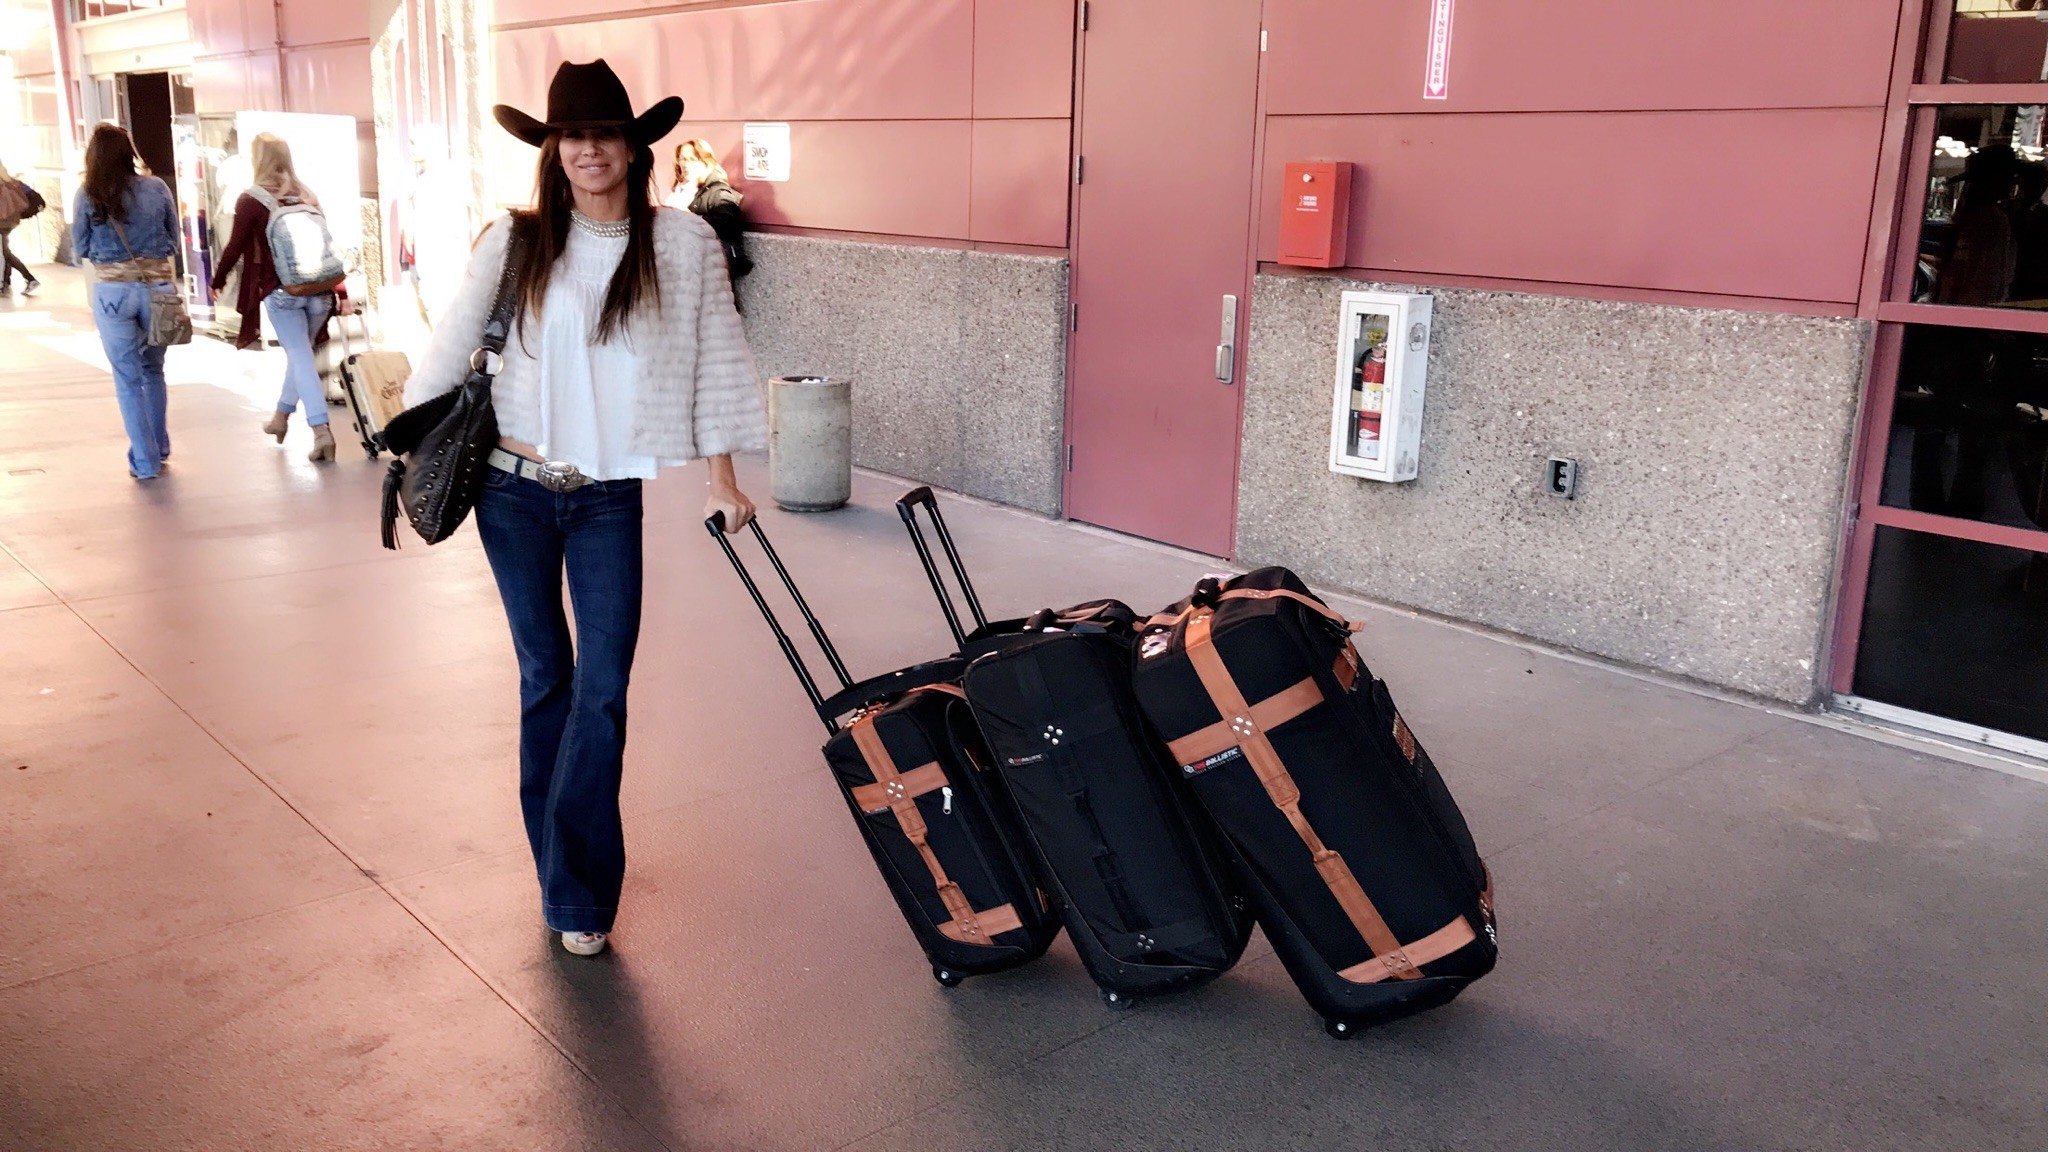 Debbe Dunning and her TRS Ballistic Luggage